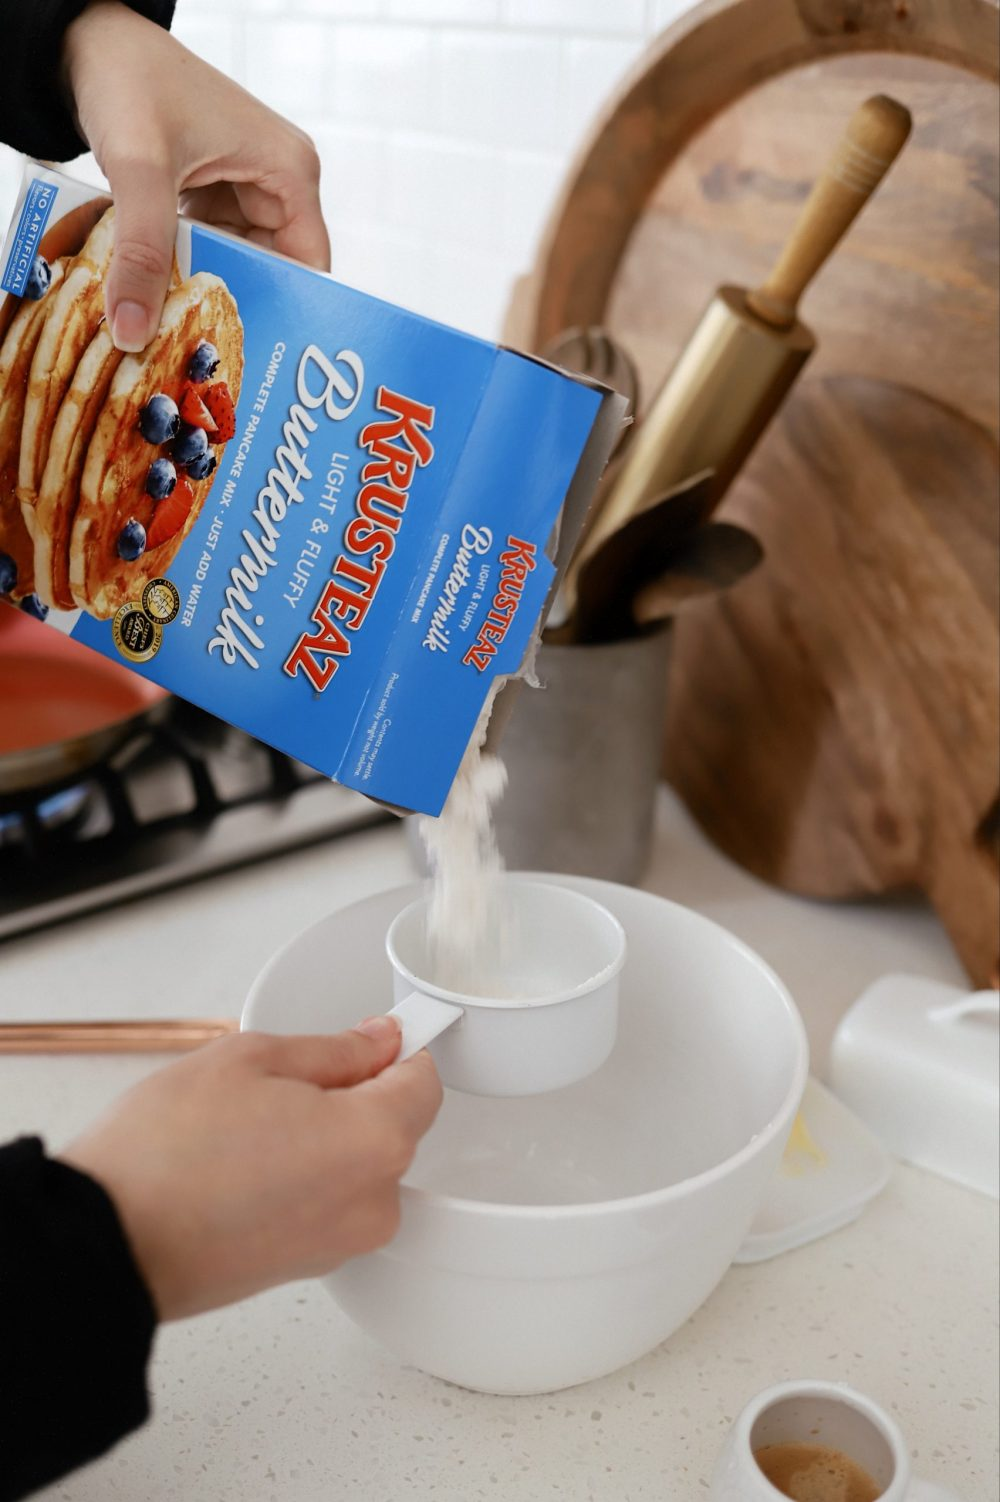 Mouthwatering Coffee Pancakes With Espresso and Vanilla Cream Whip | Coffee Pancakes by popular Florida lifestyle blog, Fresh Mommy Blog: image of a woman pouring Krusteaz buttermilk pancake mix into white measuring cup being held over a white ceramic bowl.